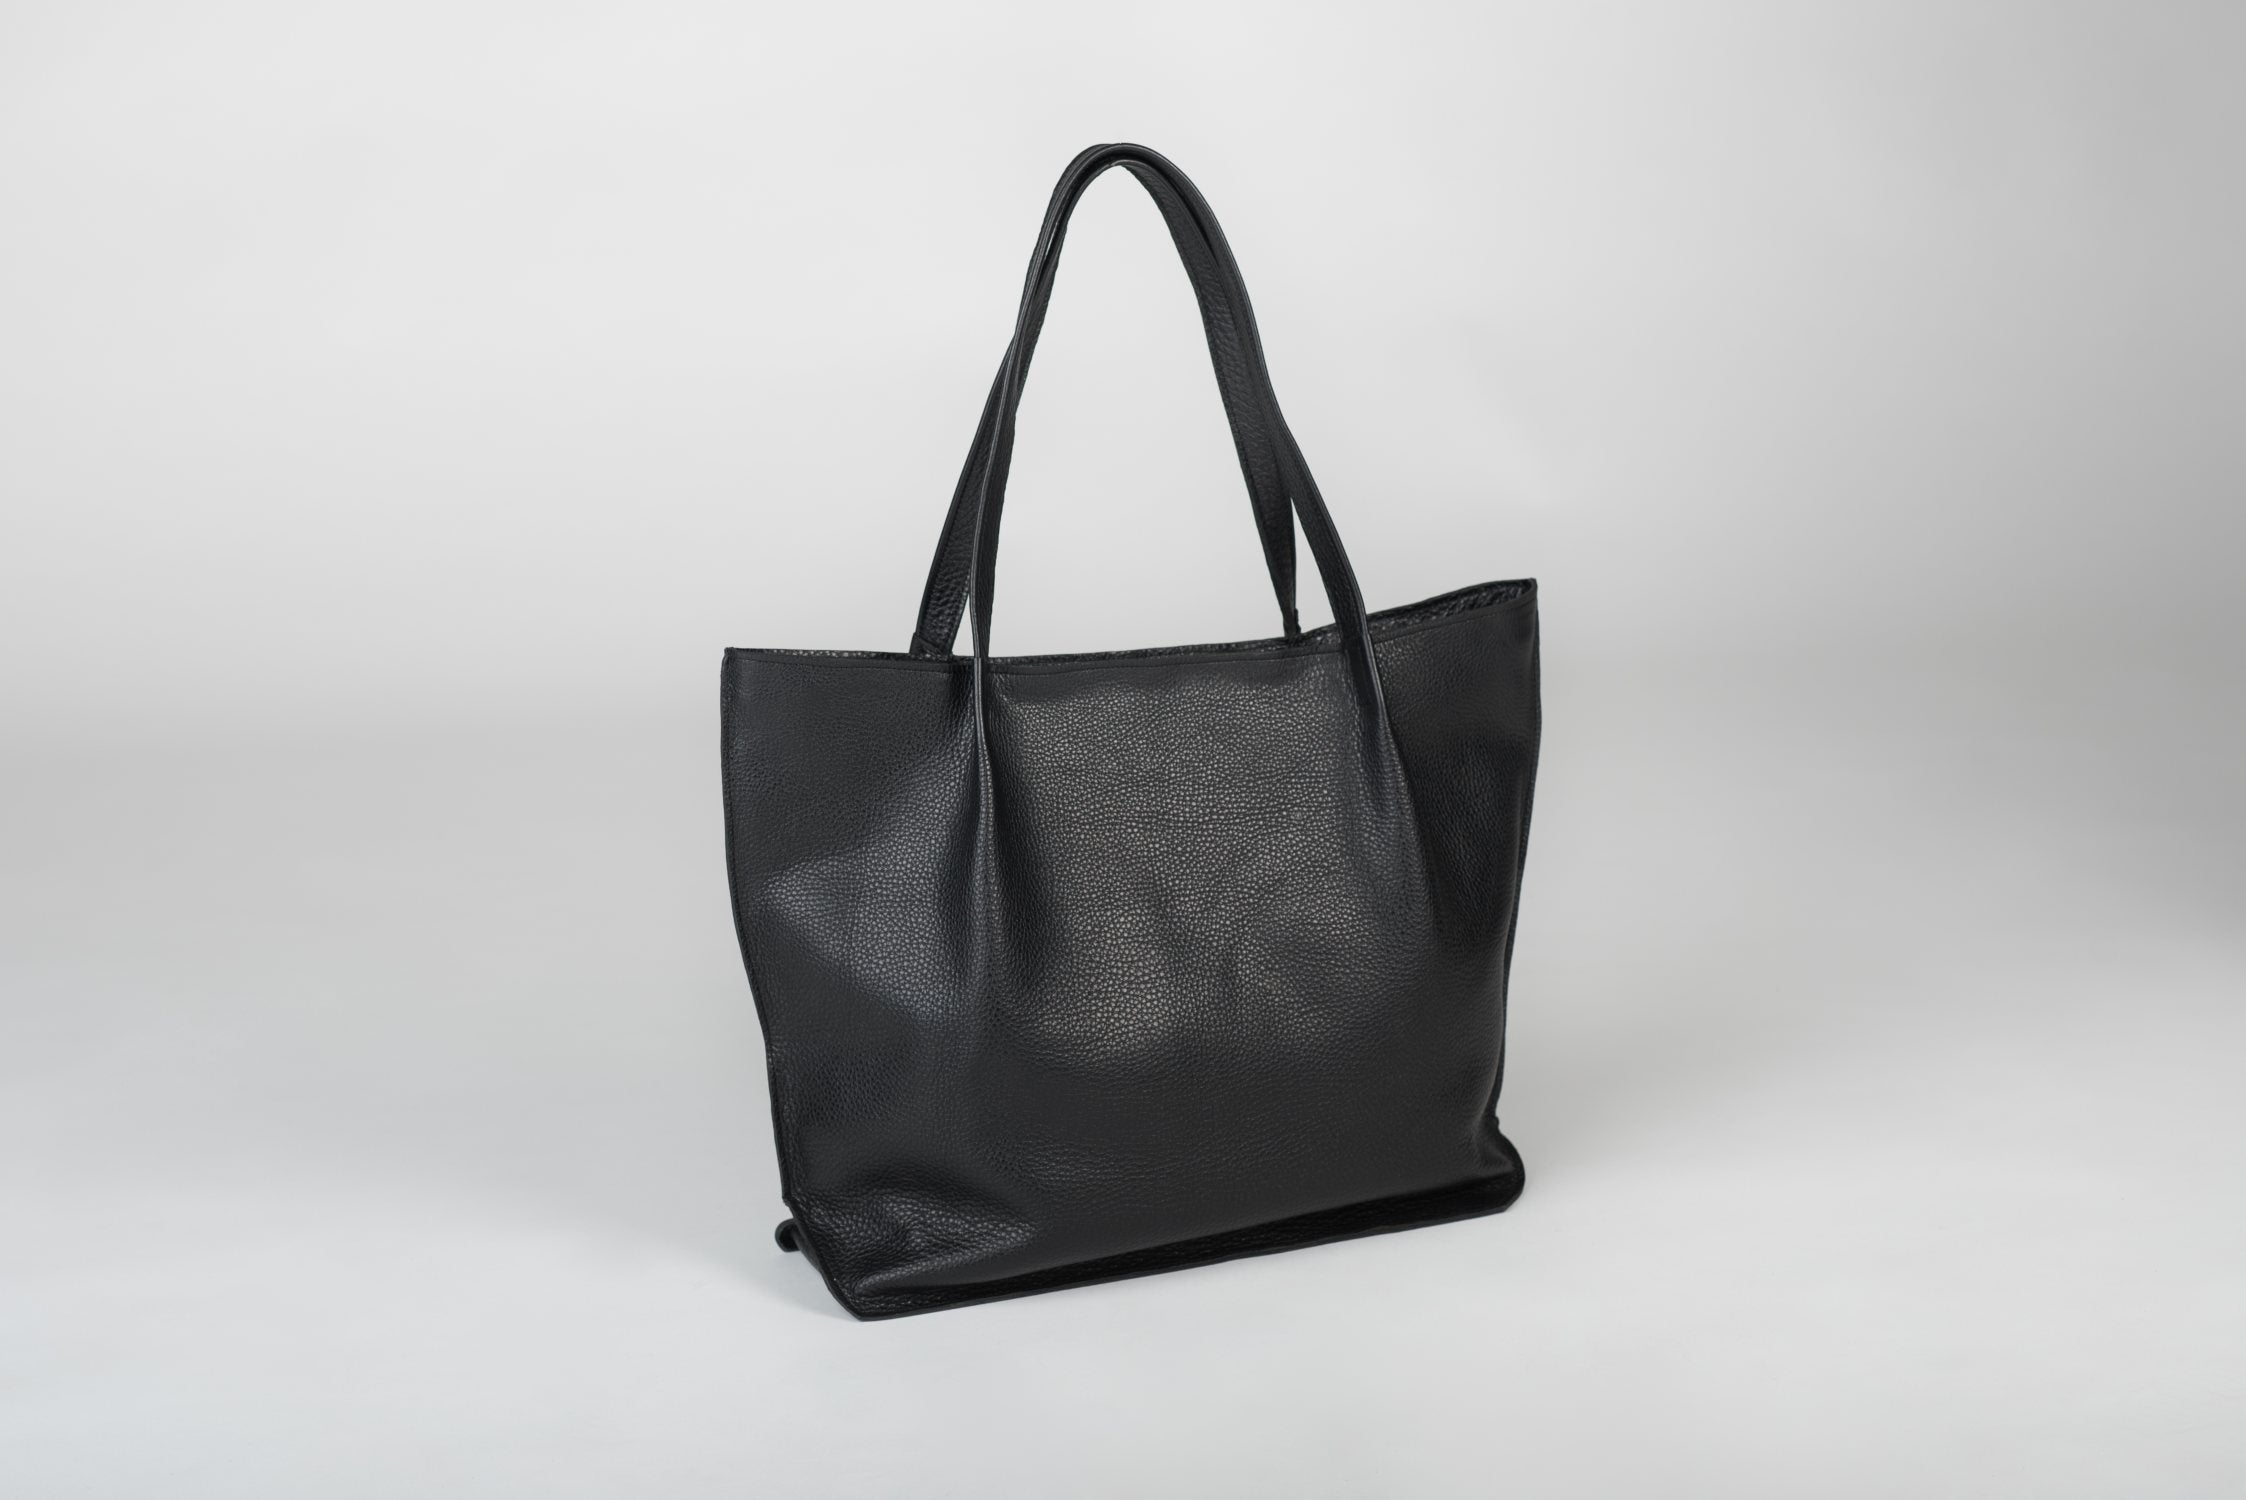 Handmade Black Leather Handbag - Ula